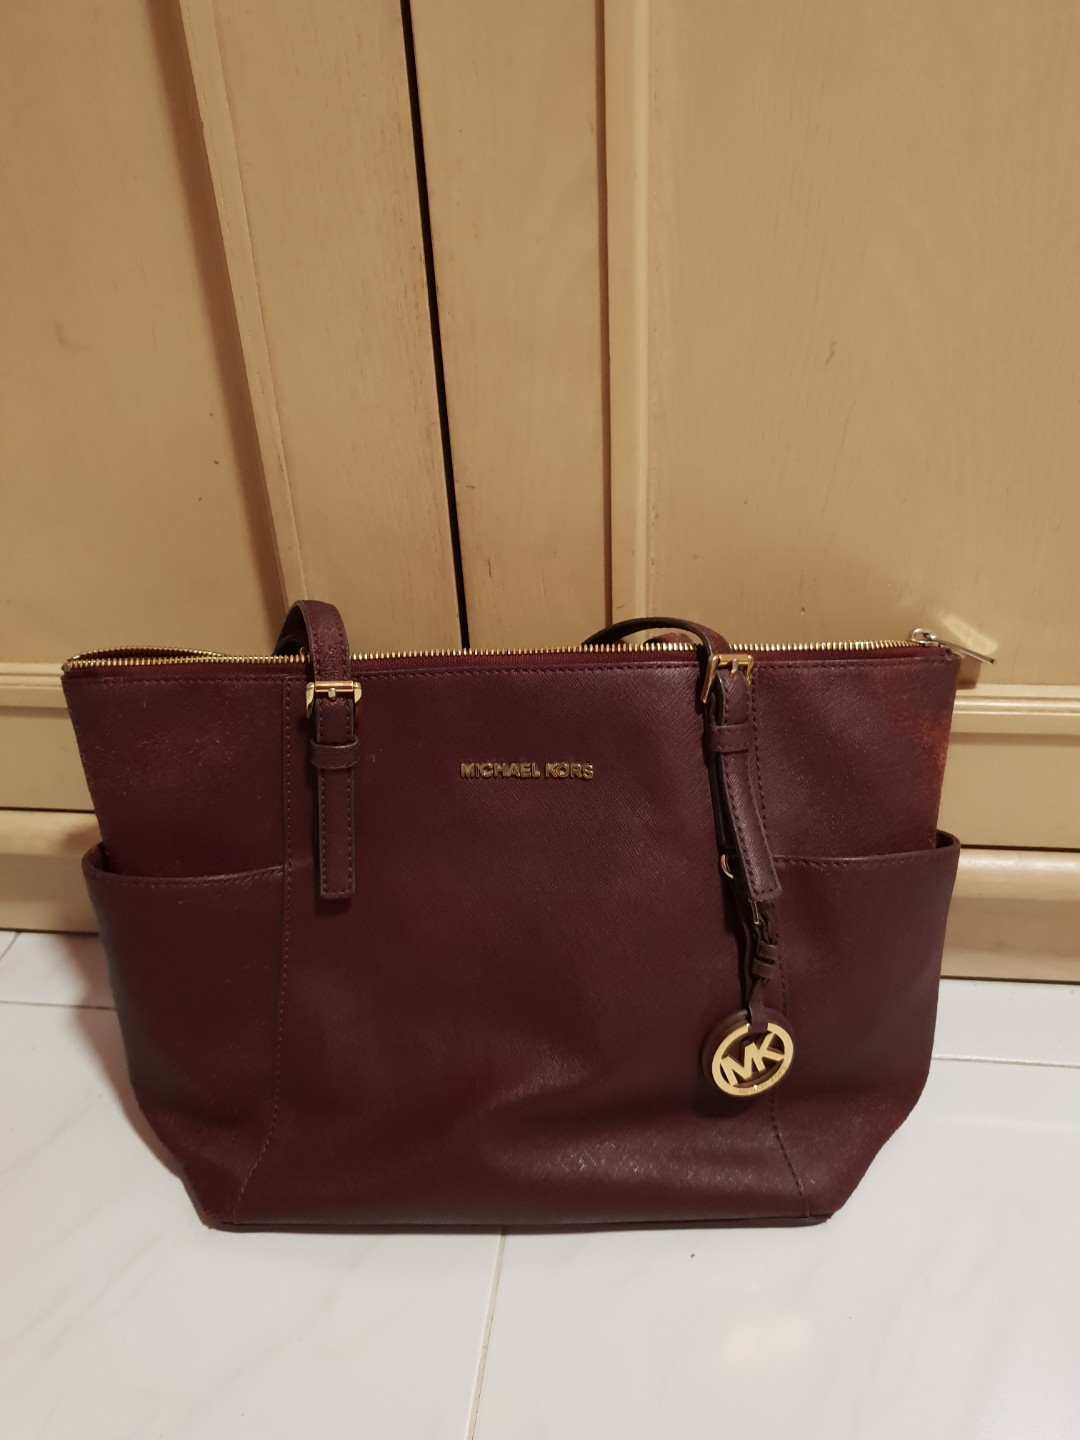 4f7540e8b315 Michael Kors Bag, Luxury, Bags & Wallets, Handbags on Carousell